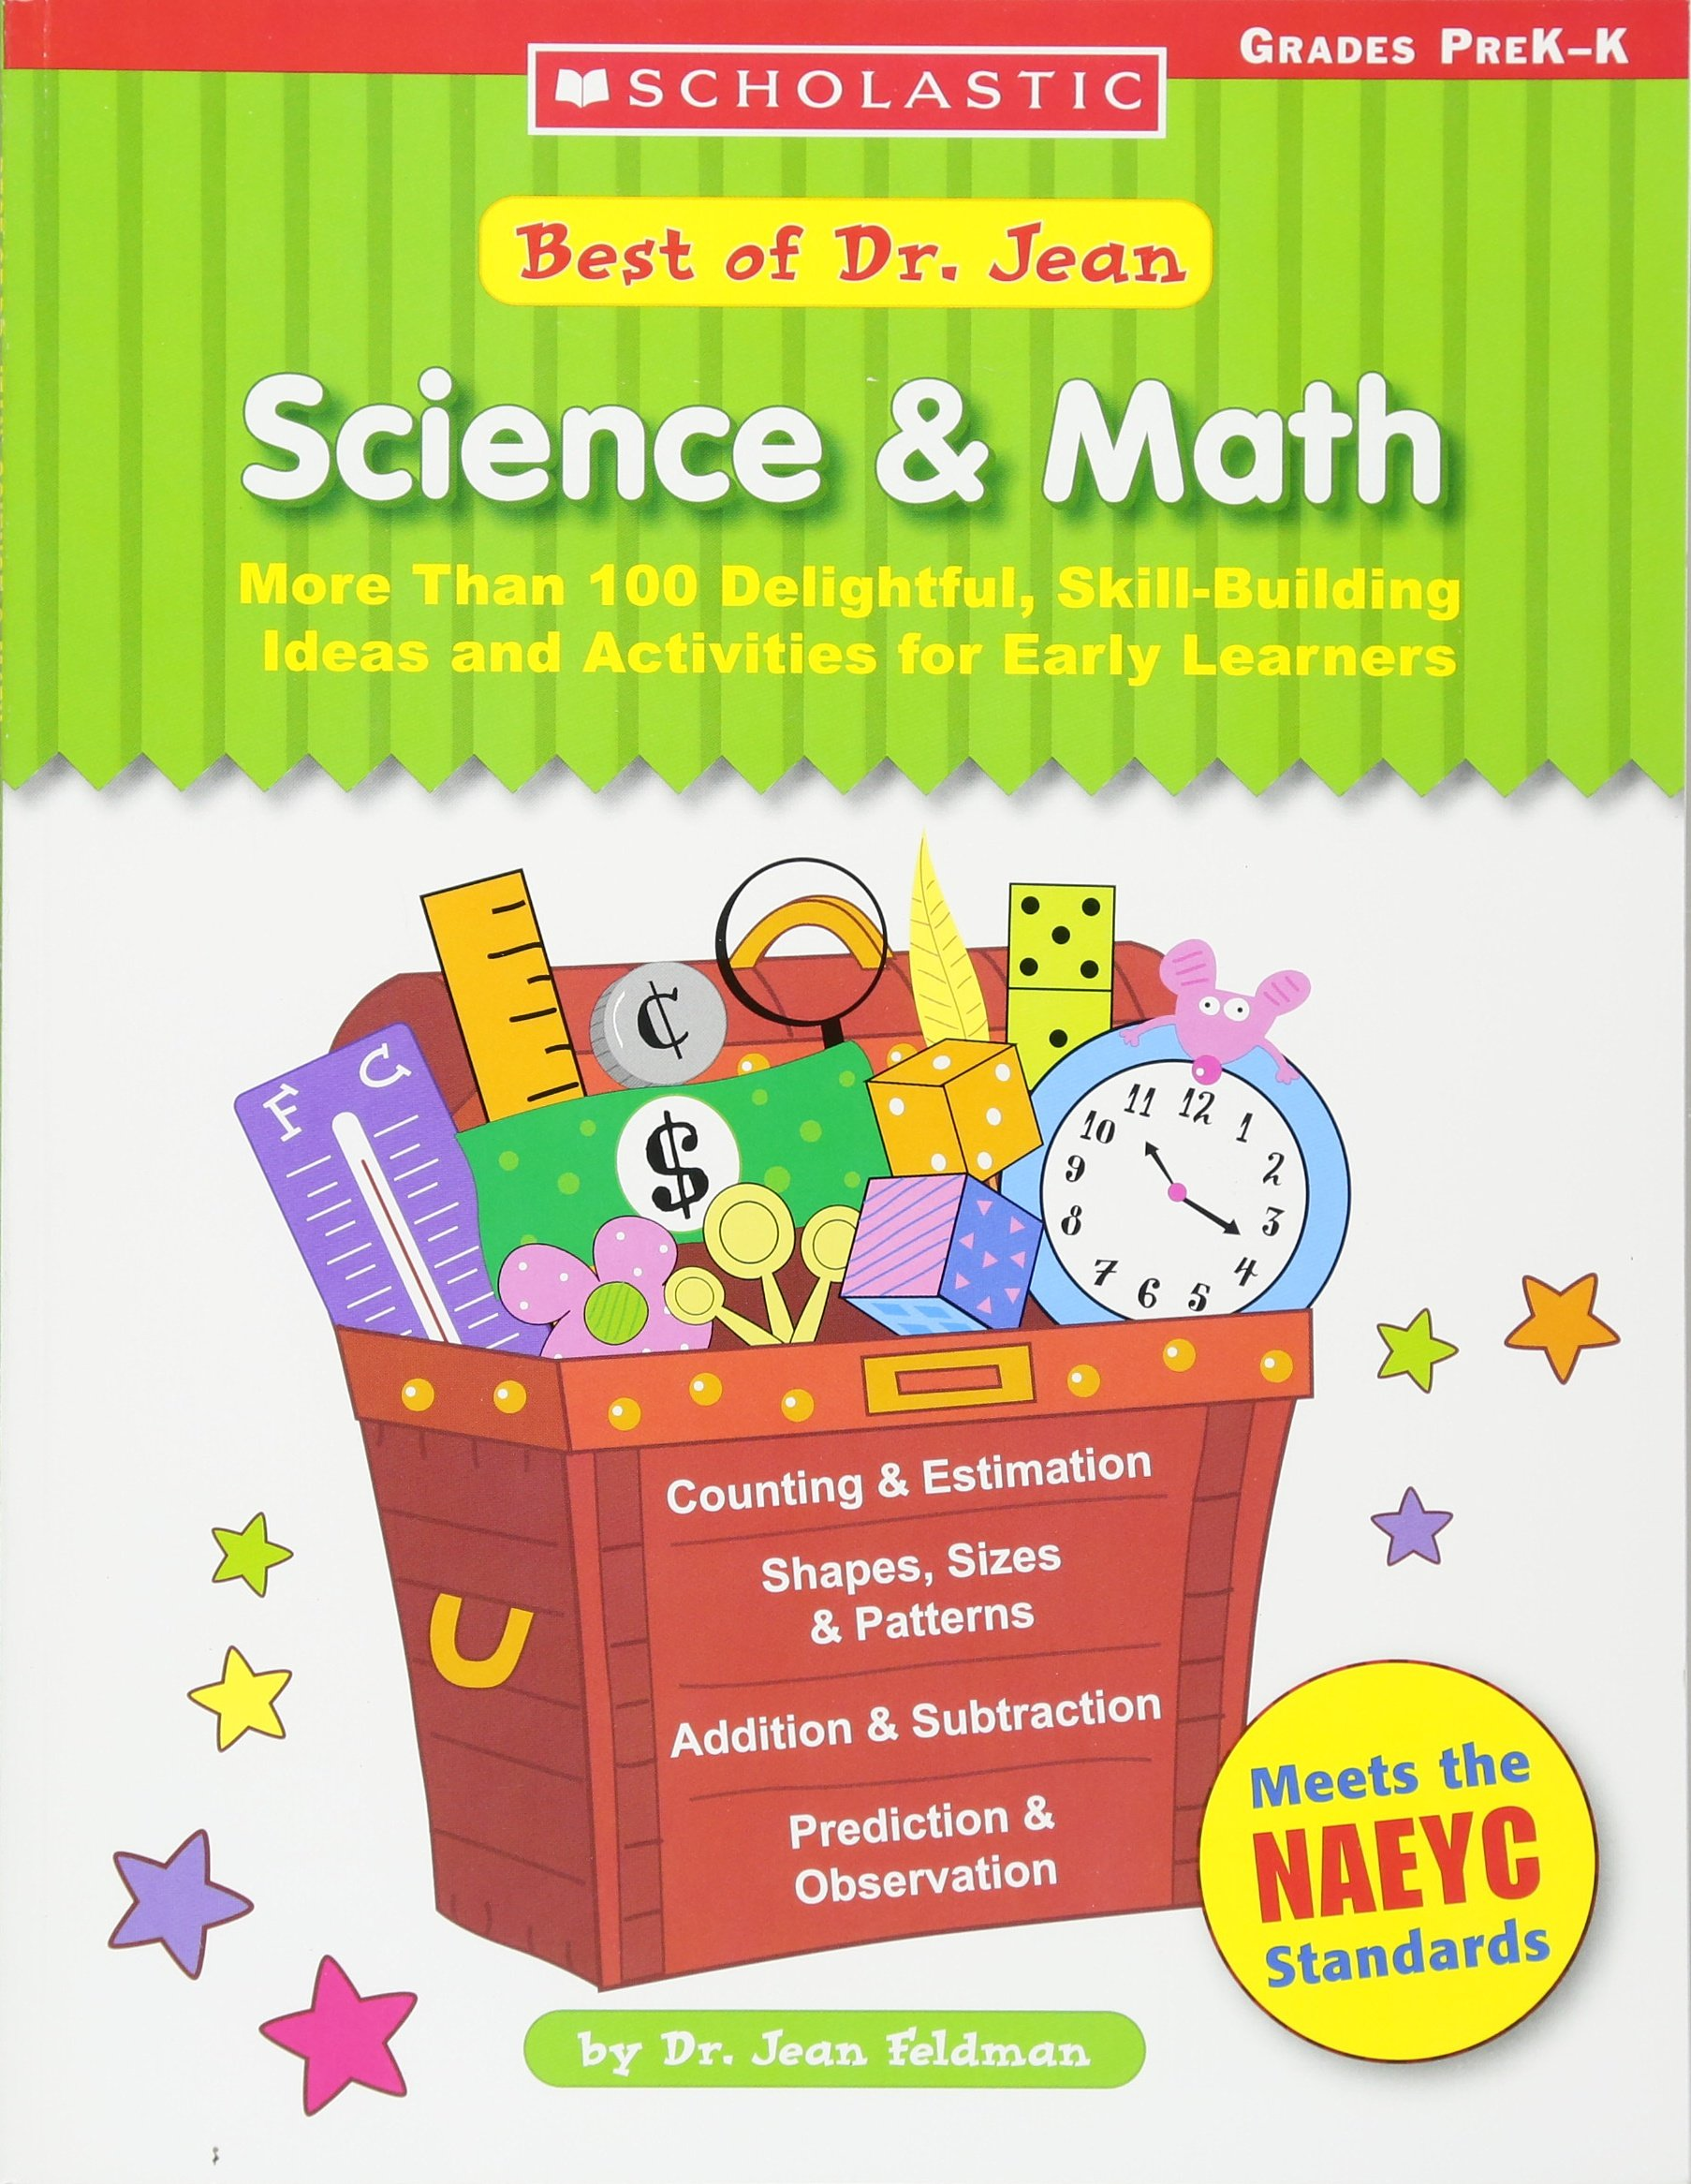 Download Best Of Dr. Jean: Science & Math: More Than 100 Delightful, Skill-Building Ideas for Early Learners ebook